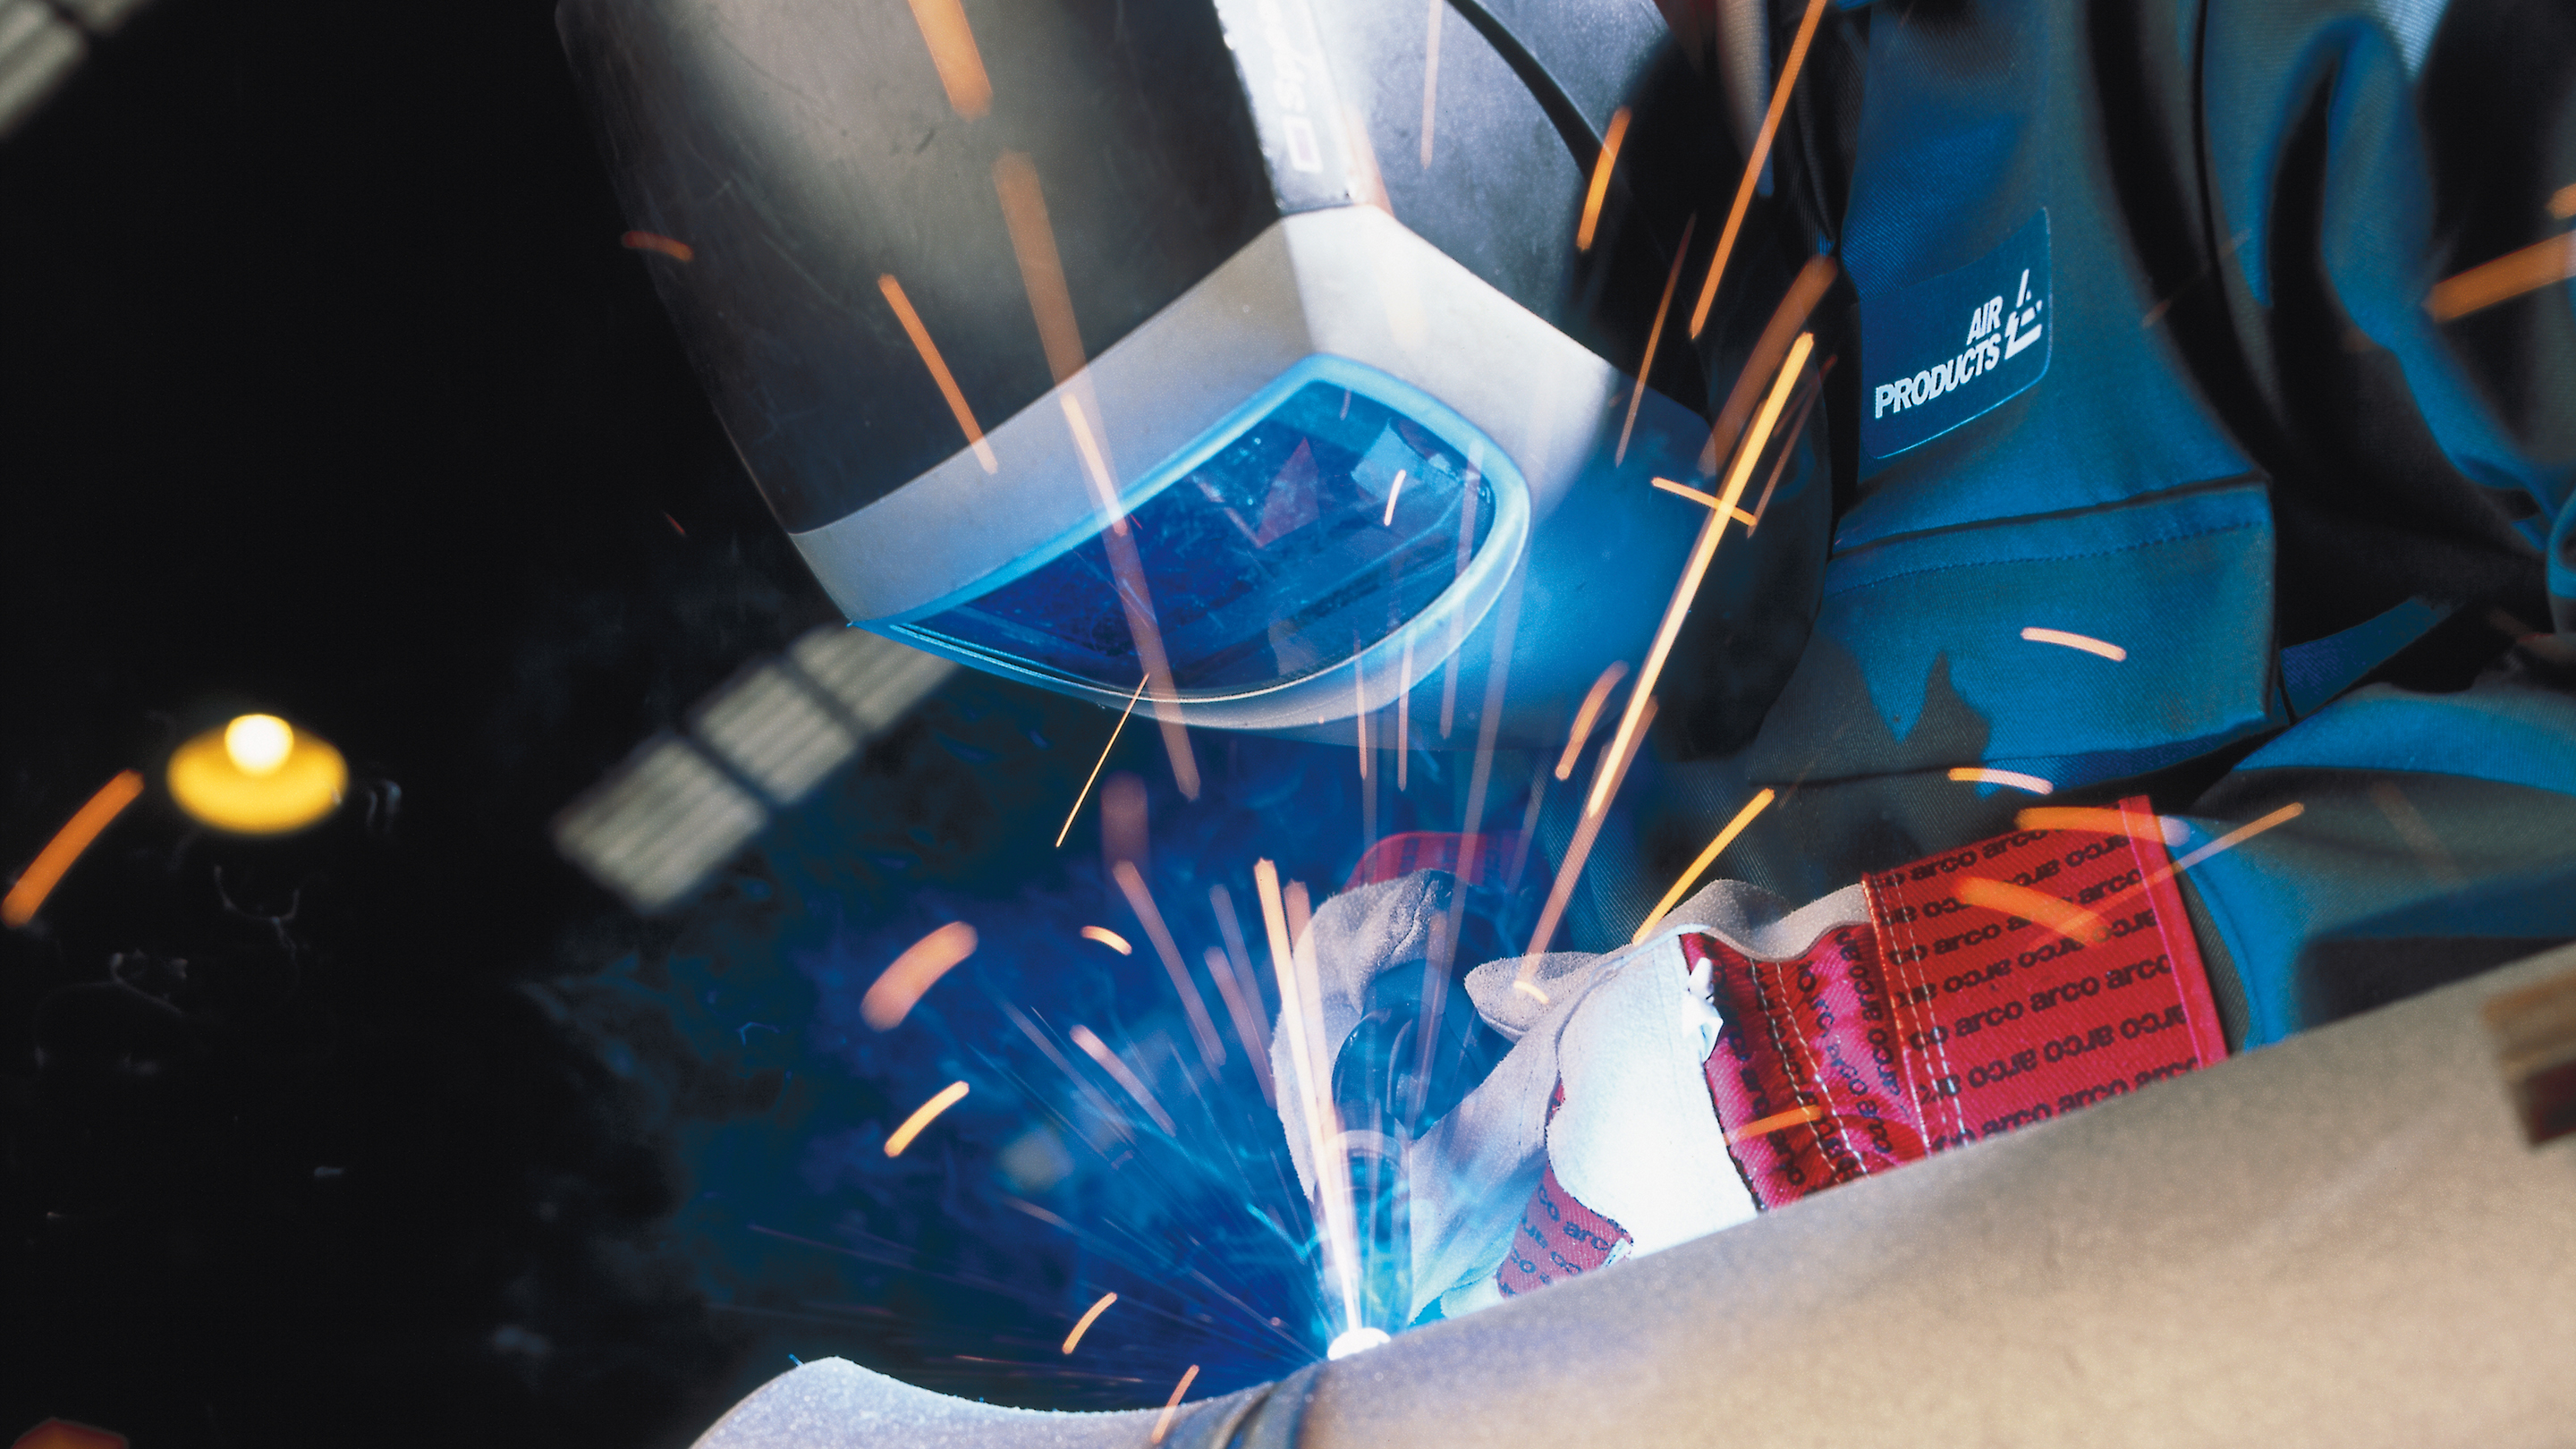 Air Products offers a full range of high-performance gases that provide improved welding safety, quality and productivity.